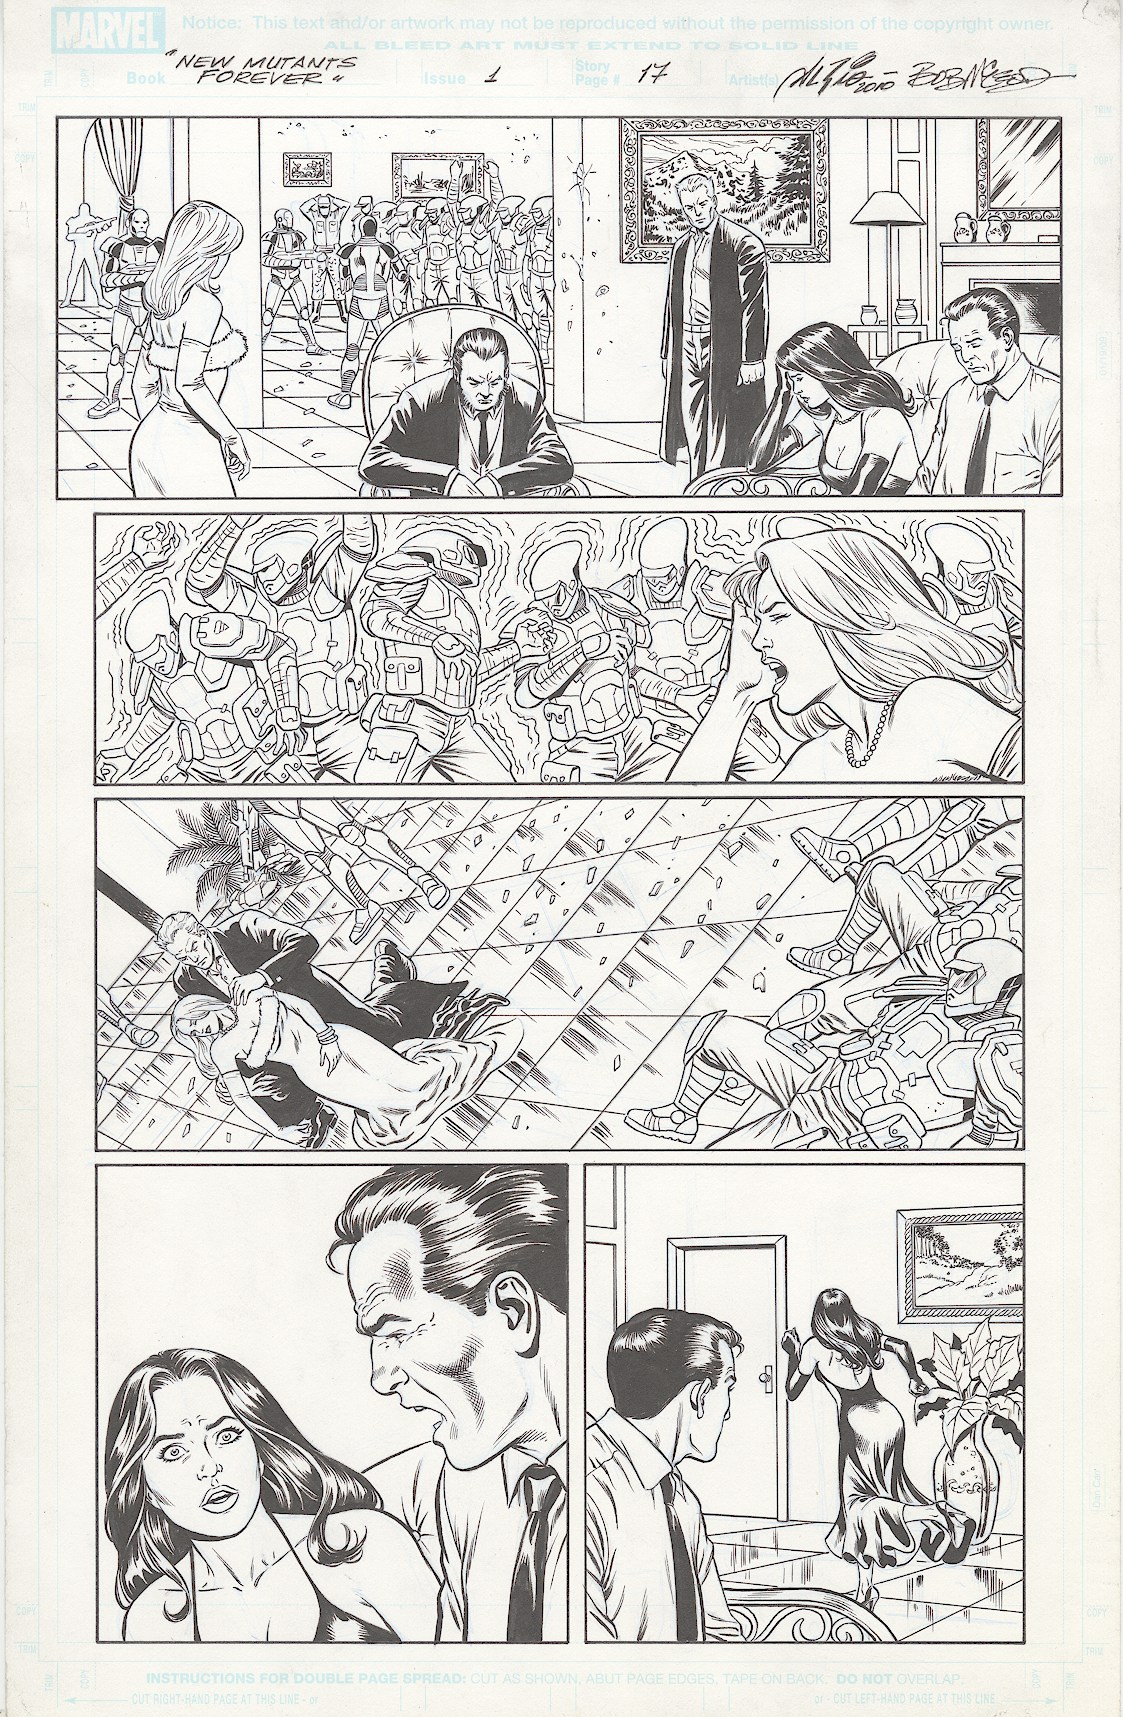 New Mutants Forever - #1, page 17 - pencils by Al Rio, Inks by Bob McLeod, Script by Chris Claremont